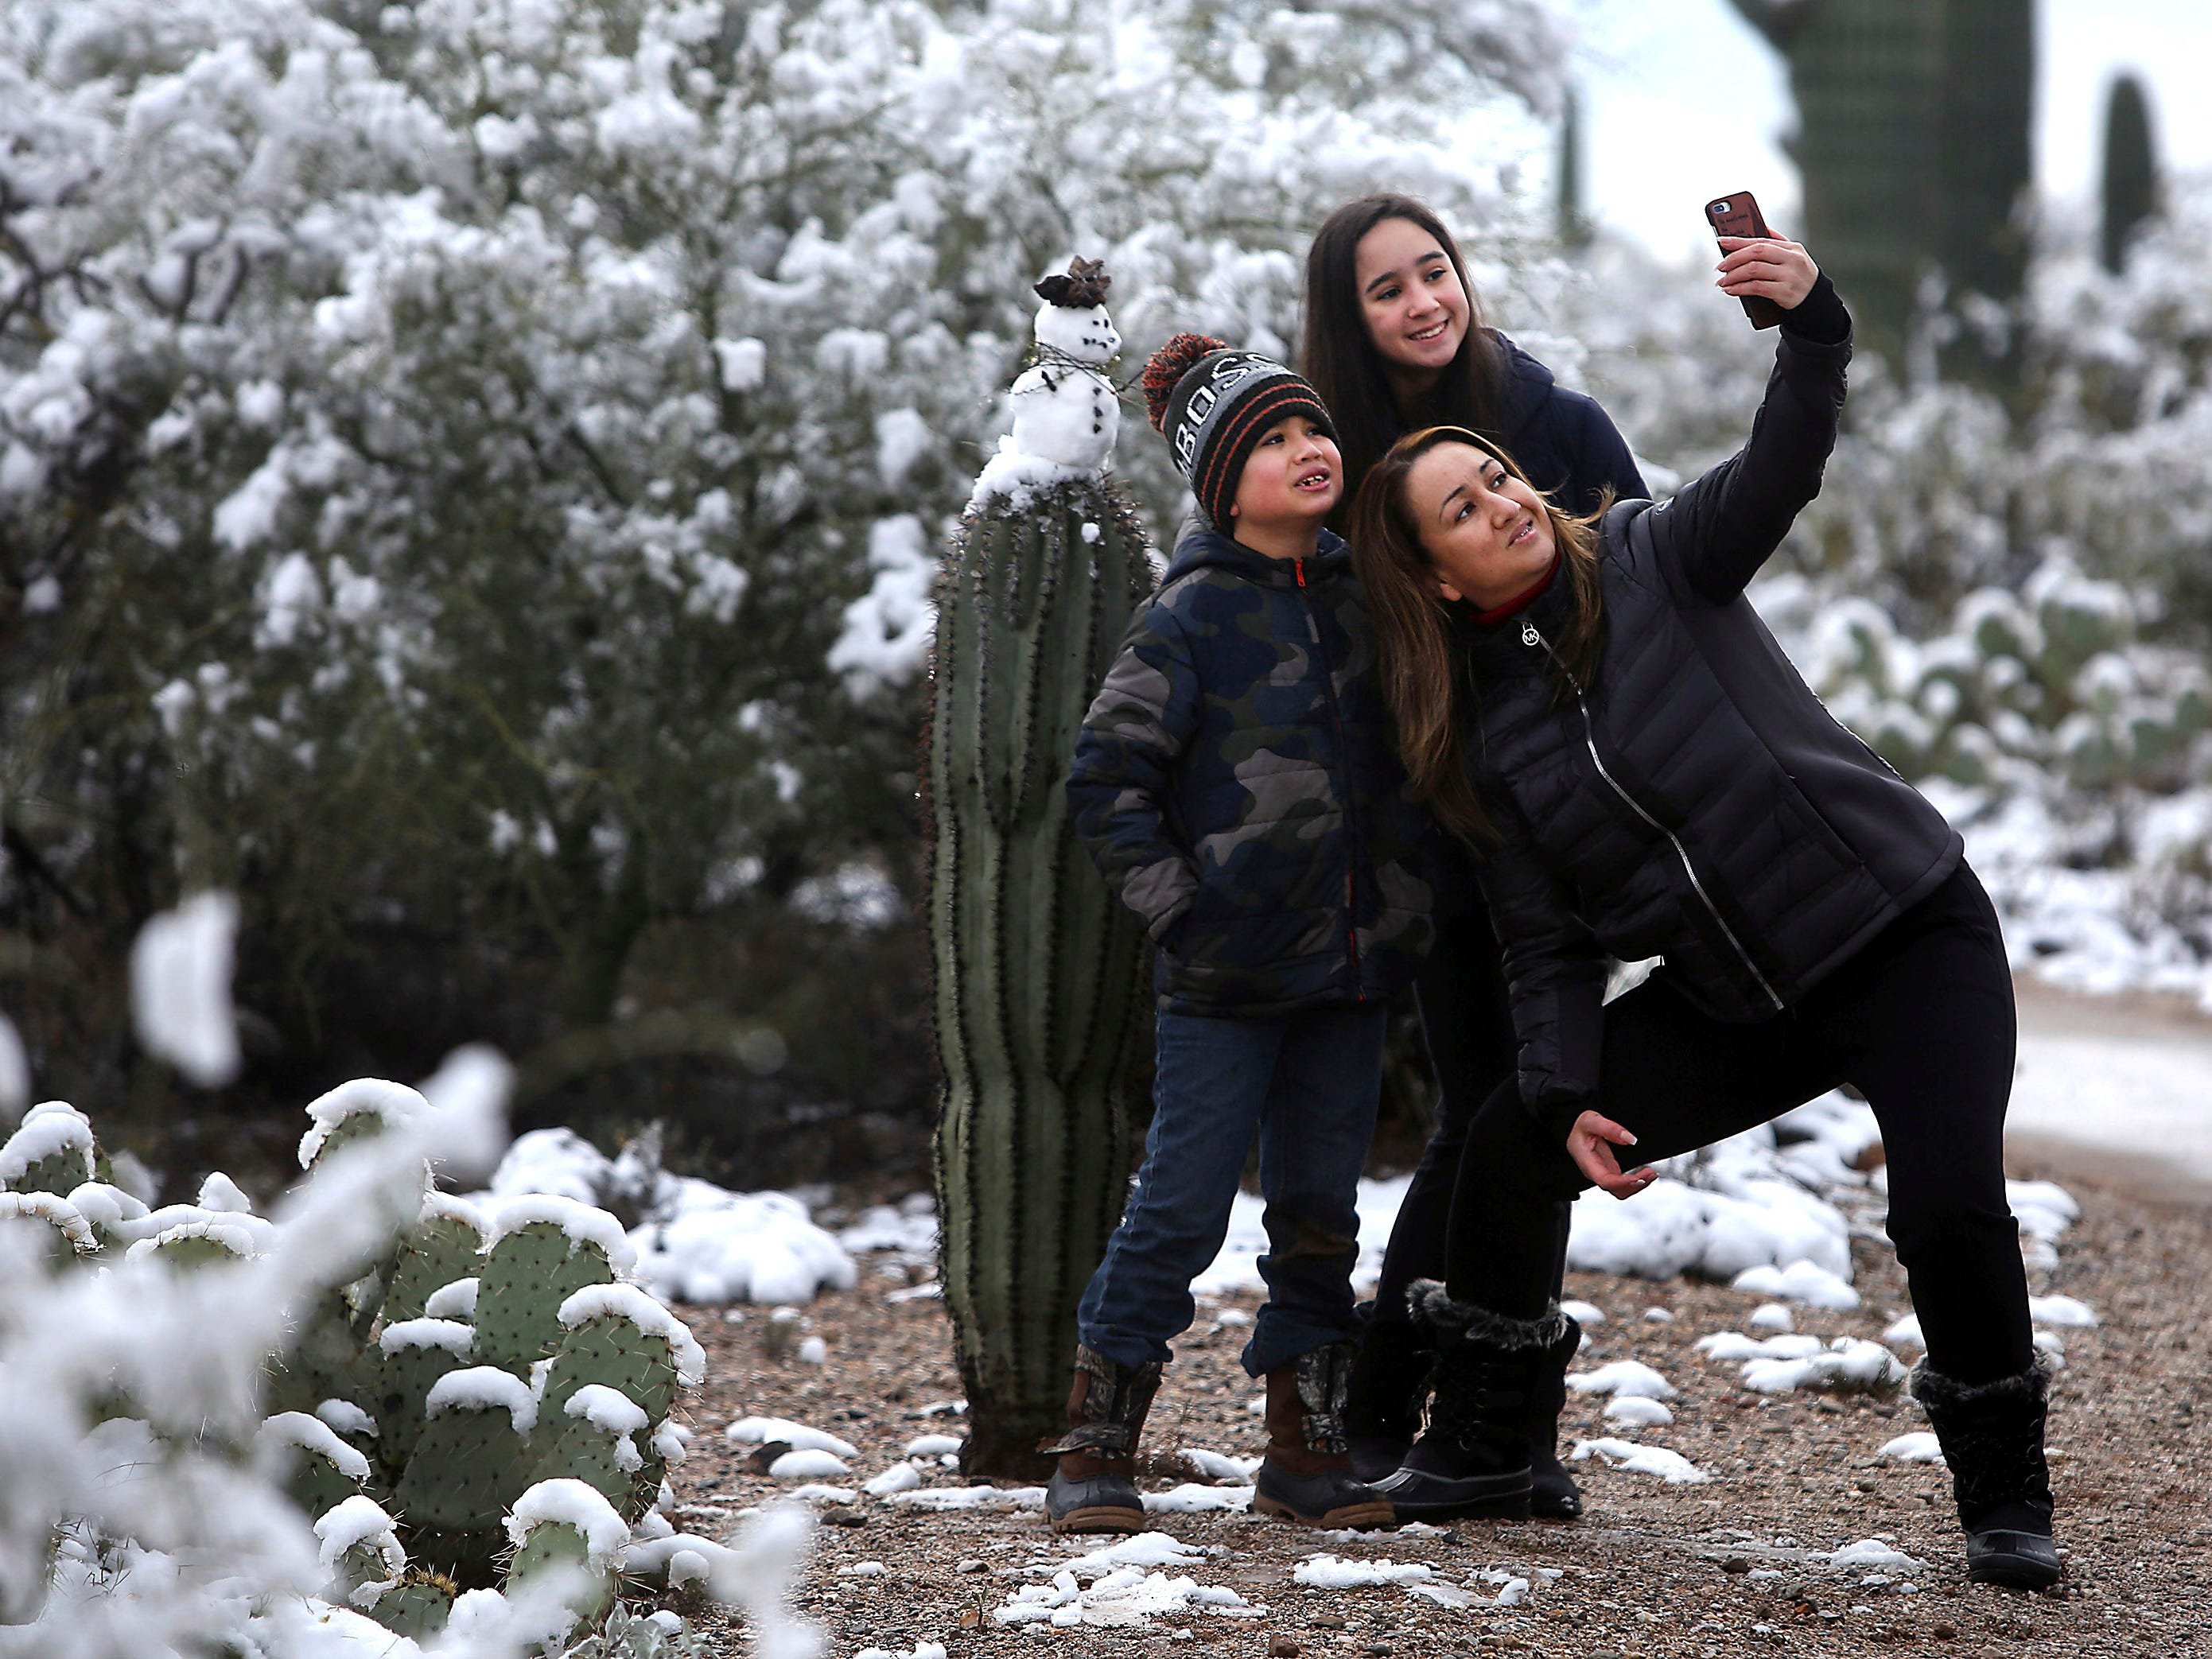 """It's the first time we've seen snow the desert,"" says Mayra Vasquez who brought Valeria Luzania, 11, and MarcoDario Luzania, 8, to Saguaro National Park East in Tucson Jan. 2, 2019. The kids built a snowman and the trio took a selfie with their creation. Parts of the Old Pueblo woke up to snow on New Year's Day."